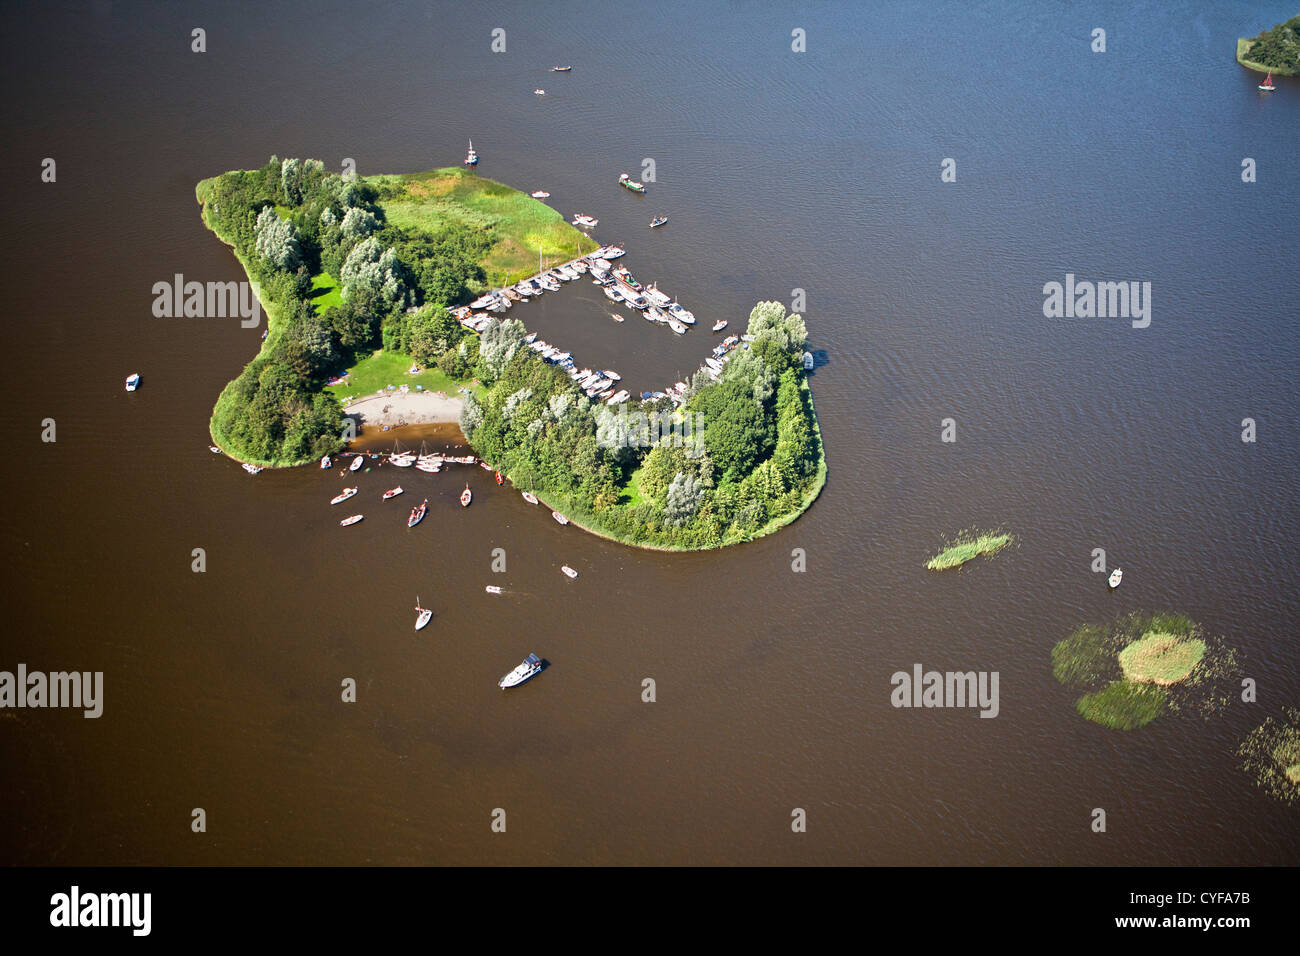 The Netherlands, Loosdrecht, Sailing boats and motor yachts anchored near island in Loosdrecht Lakes. Aerial. - Stock Image